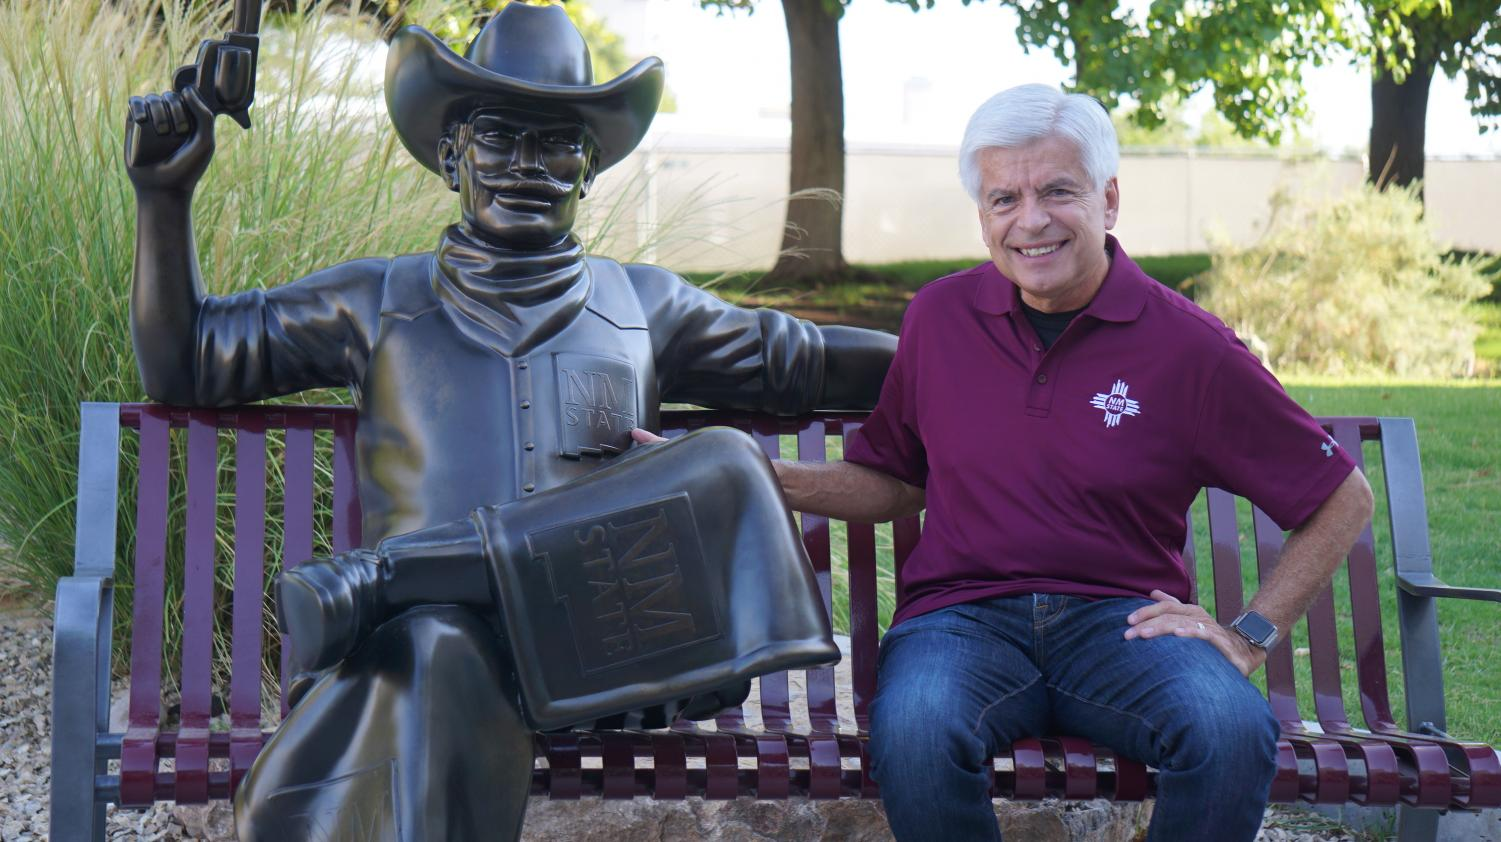 Chancellor Arvizu poses with the new Pistol Pete bronze sculpture outside Corbett Center during its unveiling Wednesday morning.